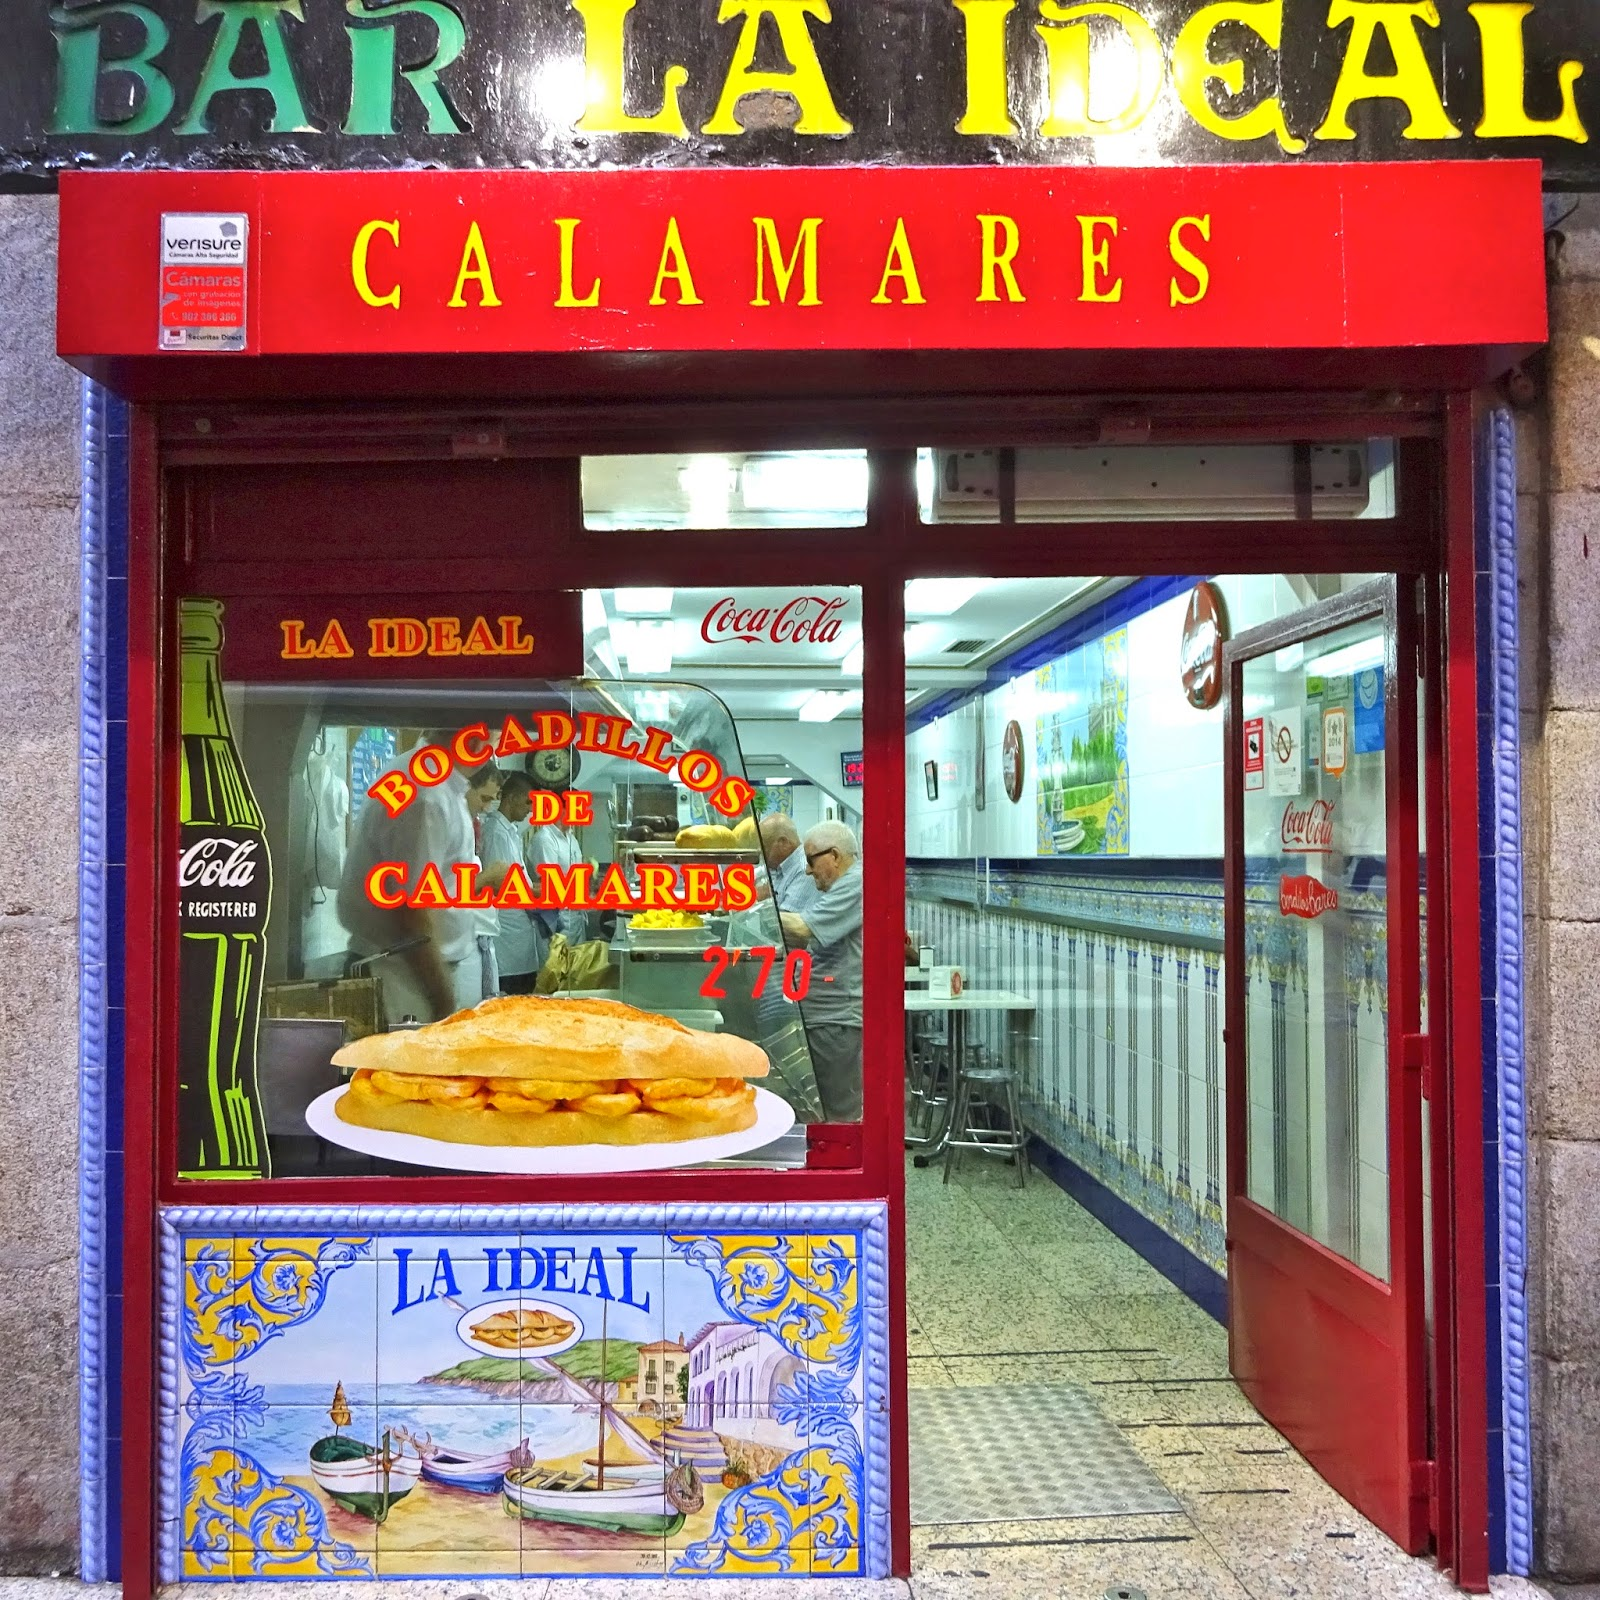 bar, calamares, bocadillo, madrid, plaza mayor madrid, plaza mayor,